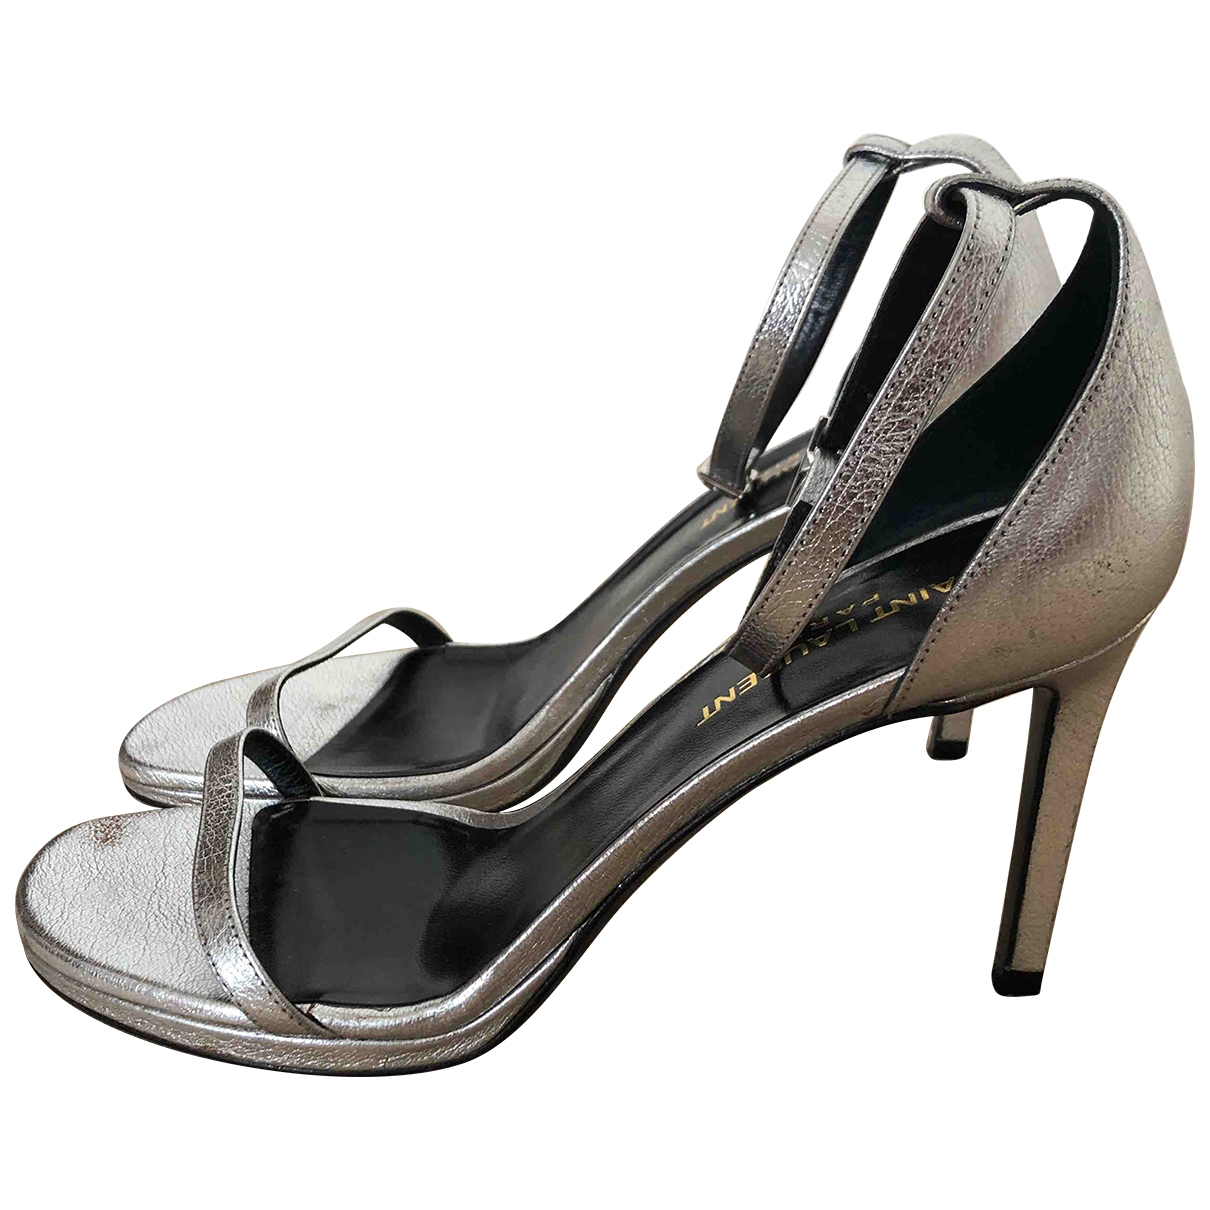 Saint Laurent \N Silver Leather Sandals for Women 37 EU